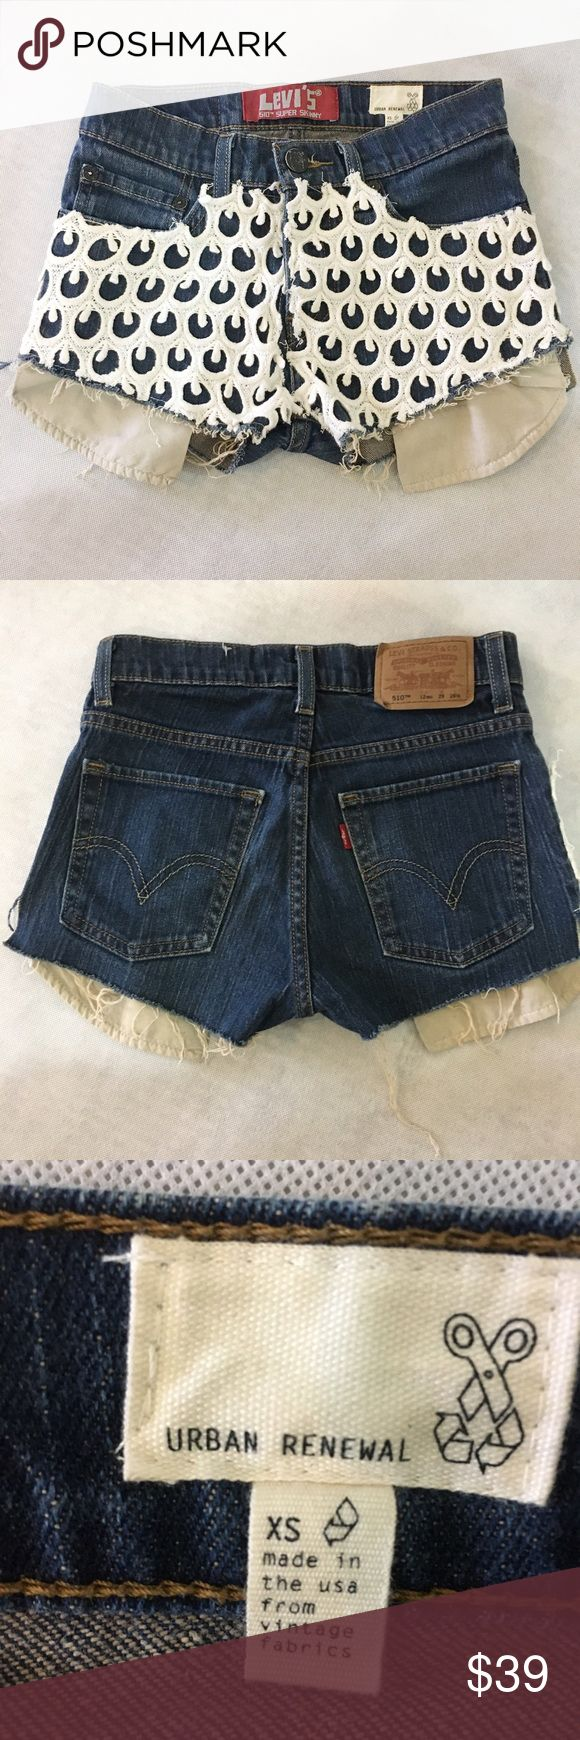 Levi's Urban outfitters shorts Like new condition. True to size. Levi's urban renewal 510 model. From urban outfitters. Made in USA . %99 cotton %1 elastic. Made with real vintage fabrics. Very special piece. Urban Outfitters Shorts Jean Shorts